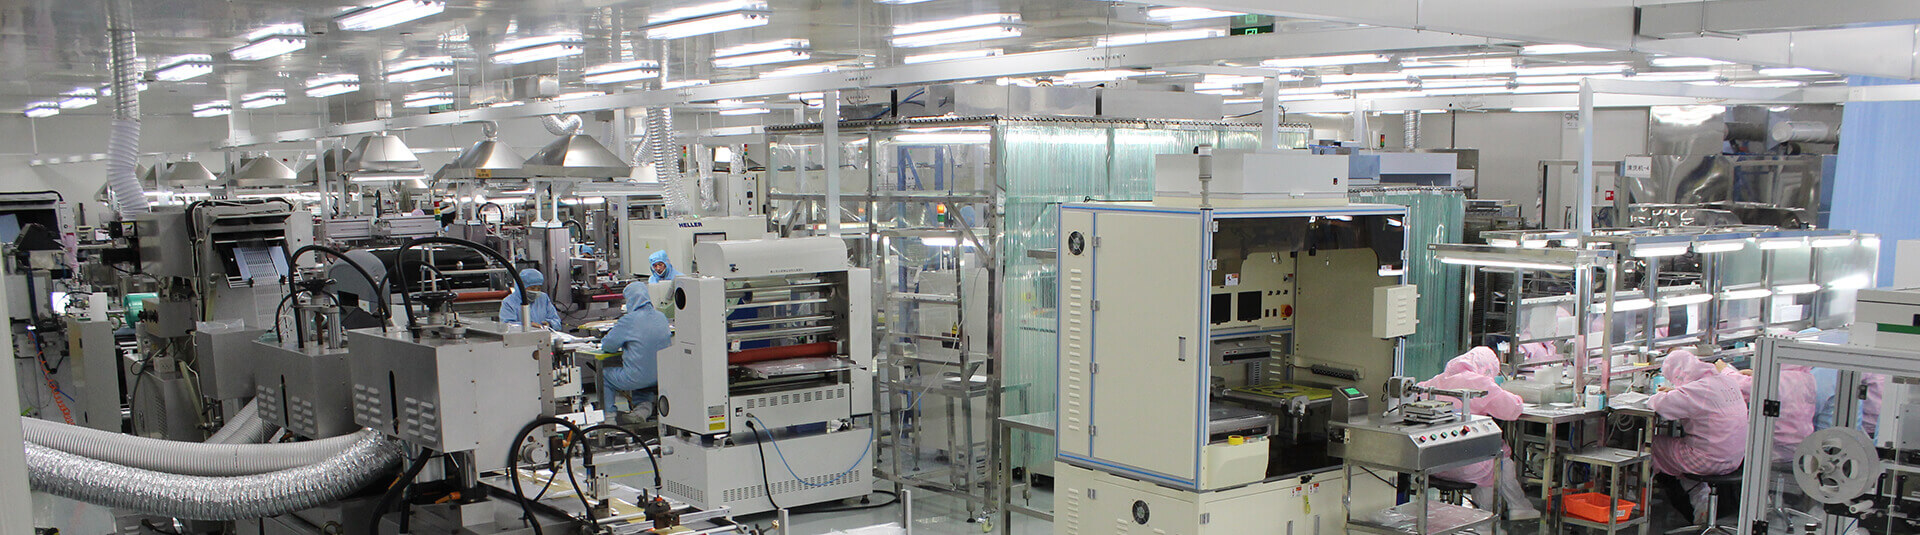 Clean room manufacturing in our building M facility in China